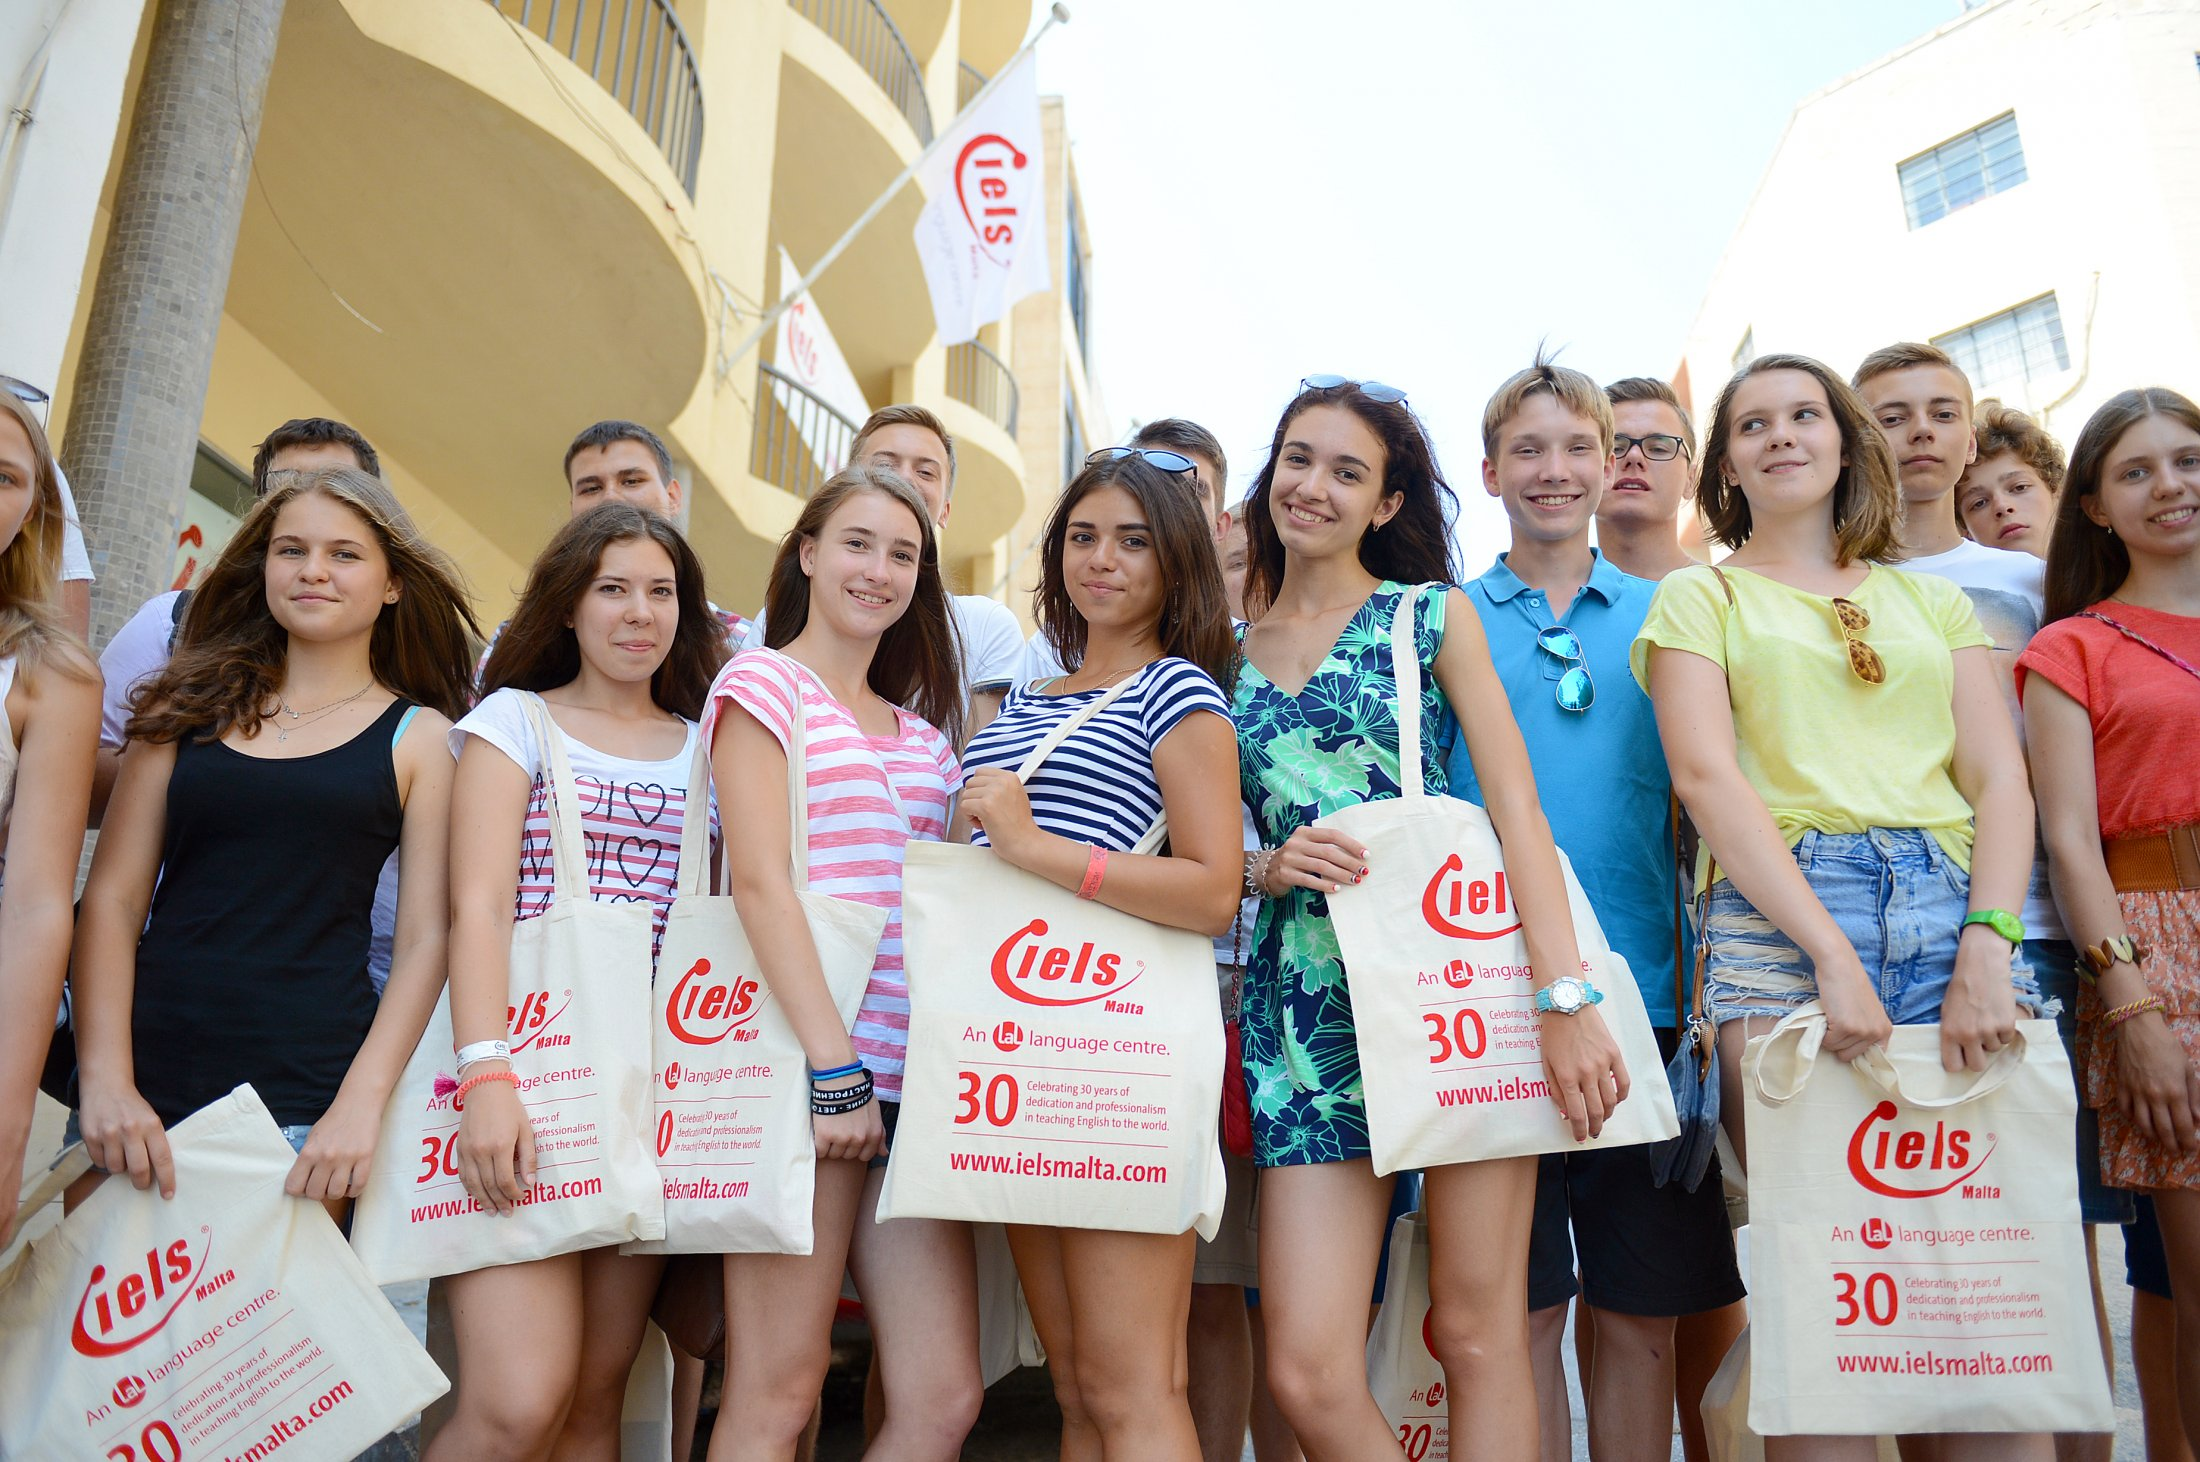 IELS-Malta-YL-School-Students-RRossignaud137.jpg